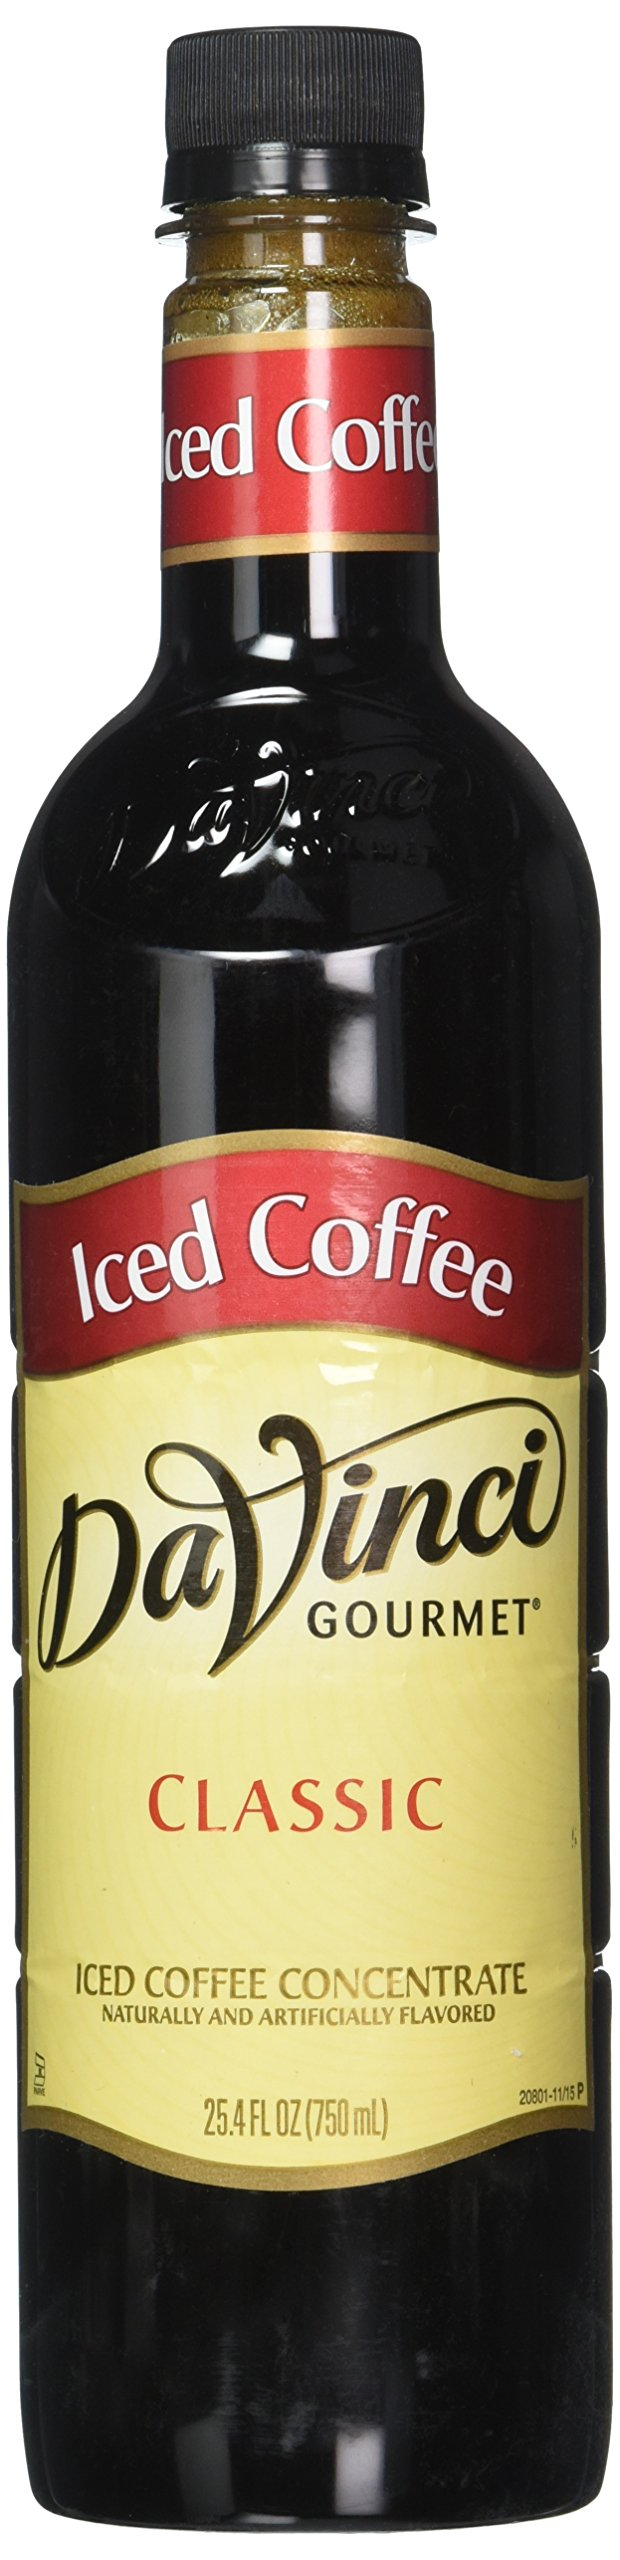 DaVinci Gourmet Iced Coffee Concentrate, 25.4 Bottle (Pack of 4)